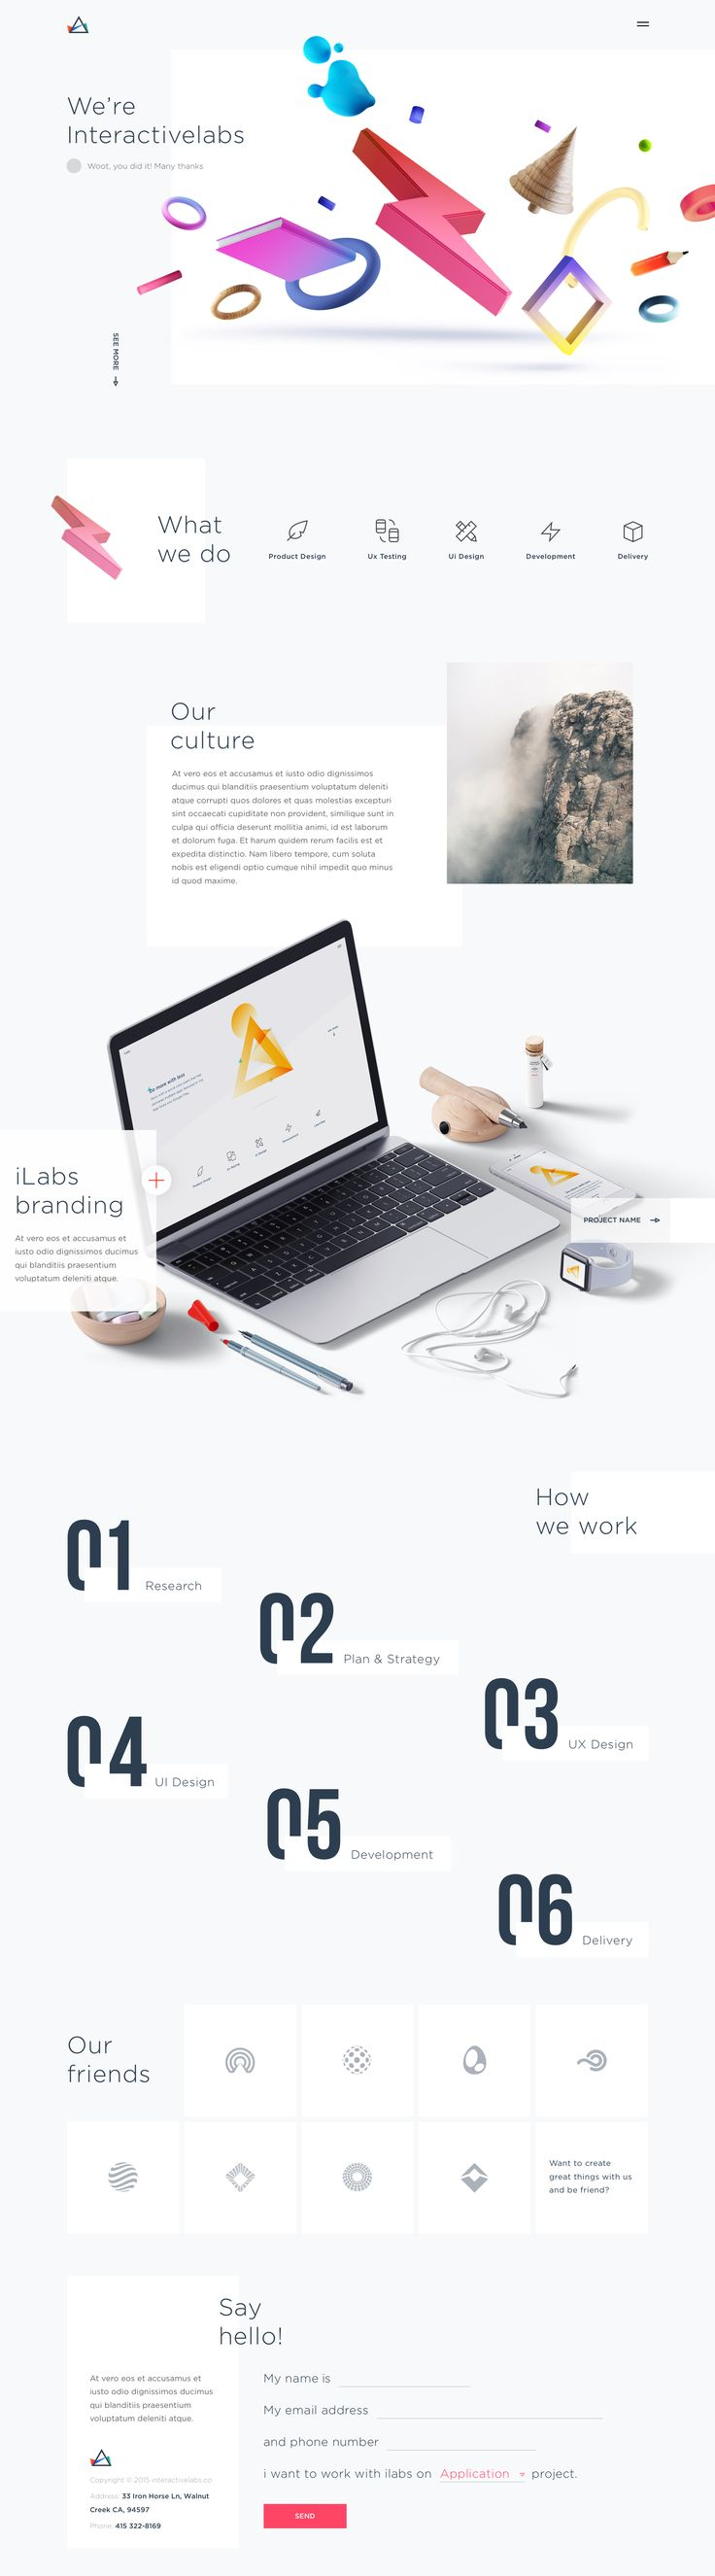 Hoang Nguyen- Sai Gon Hoang is an UX/UI designer who has a clean and minimal…